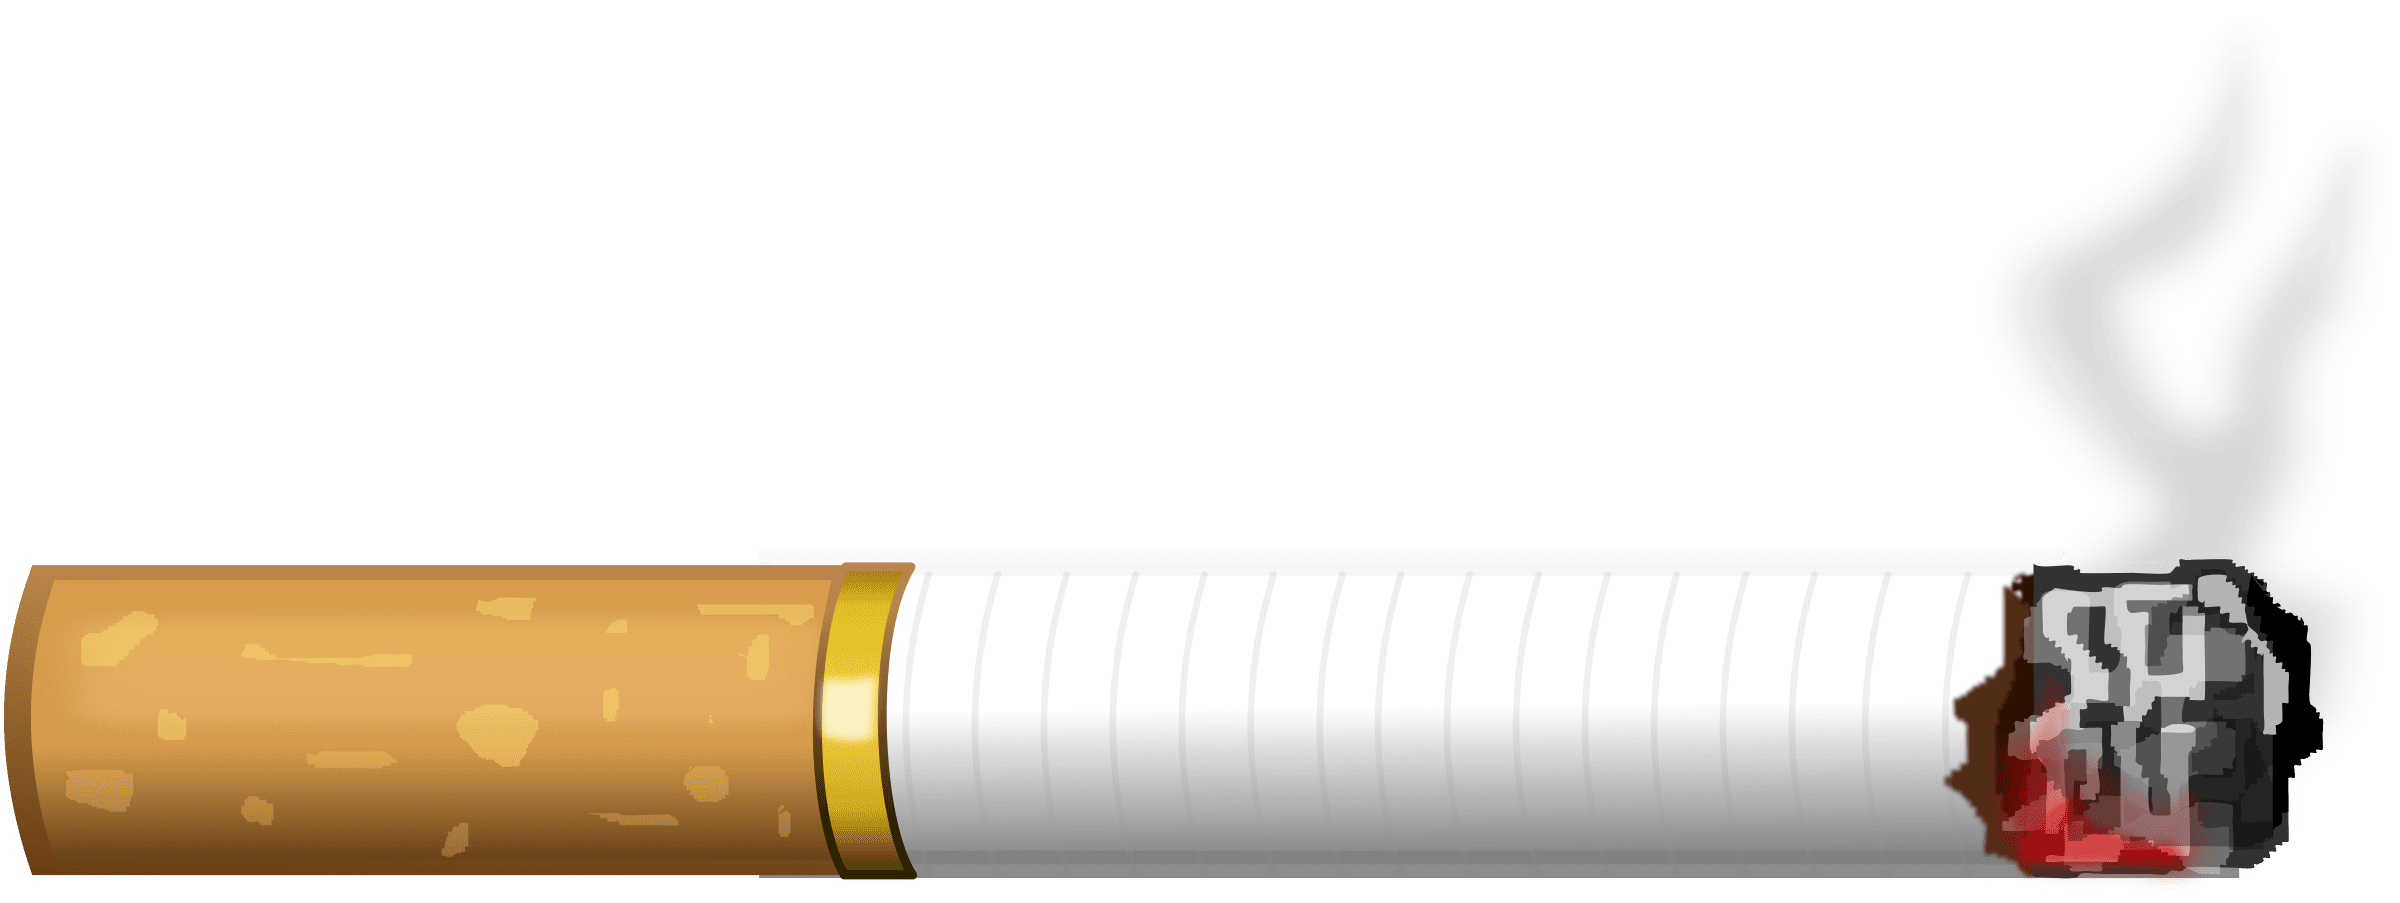 Png free images toppng. Cigarette clipart crushed